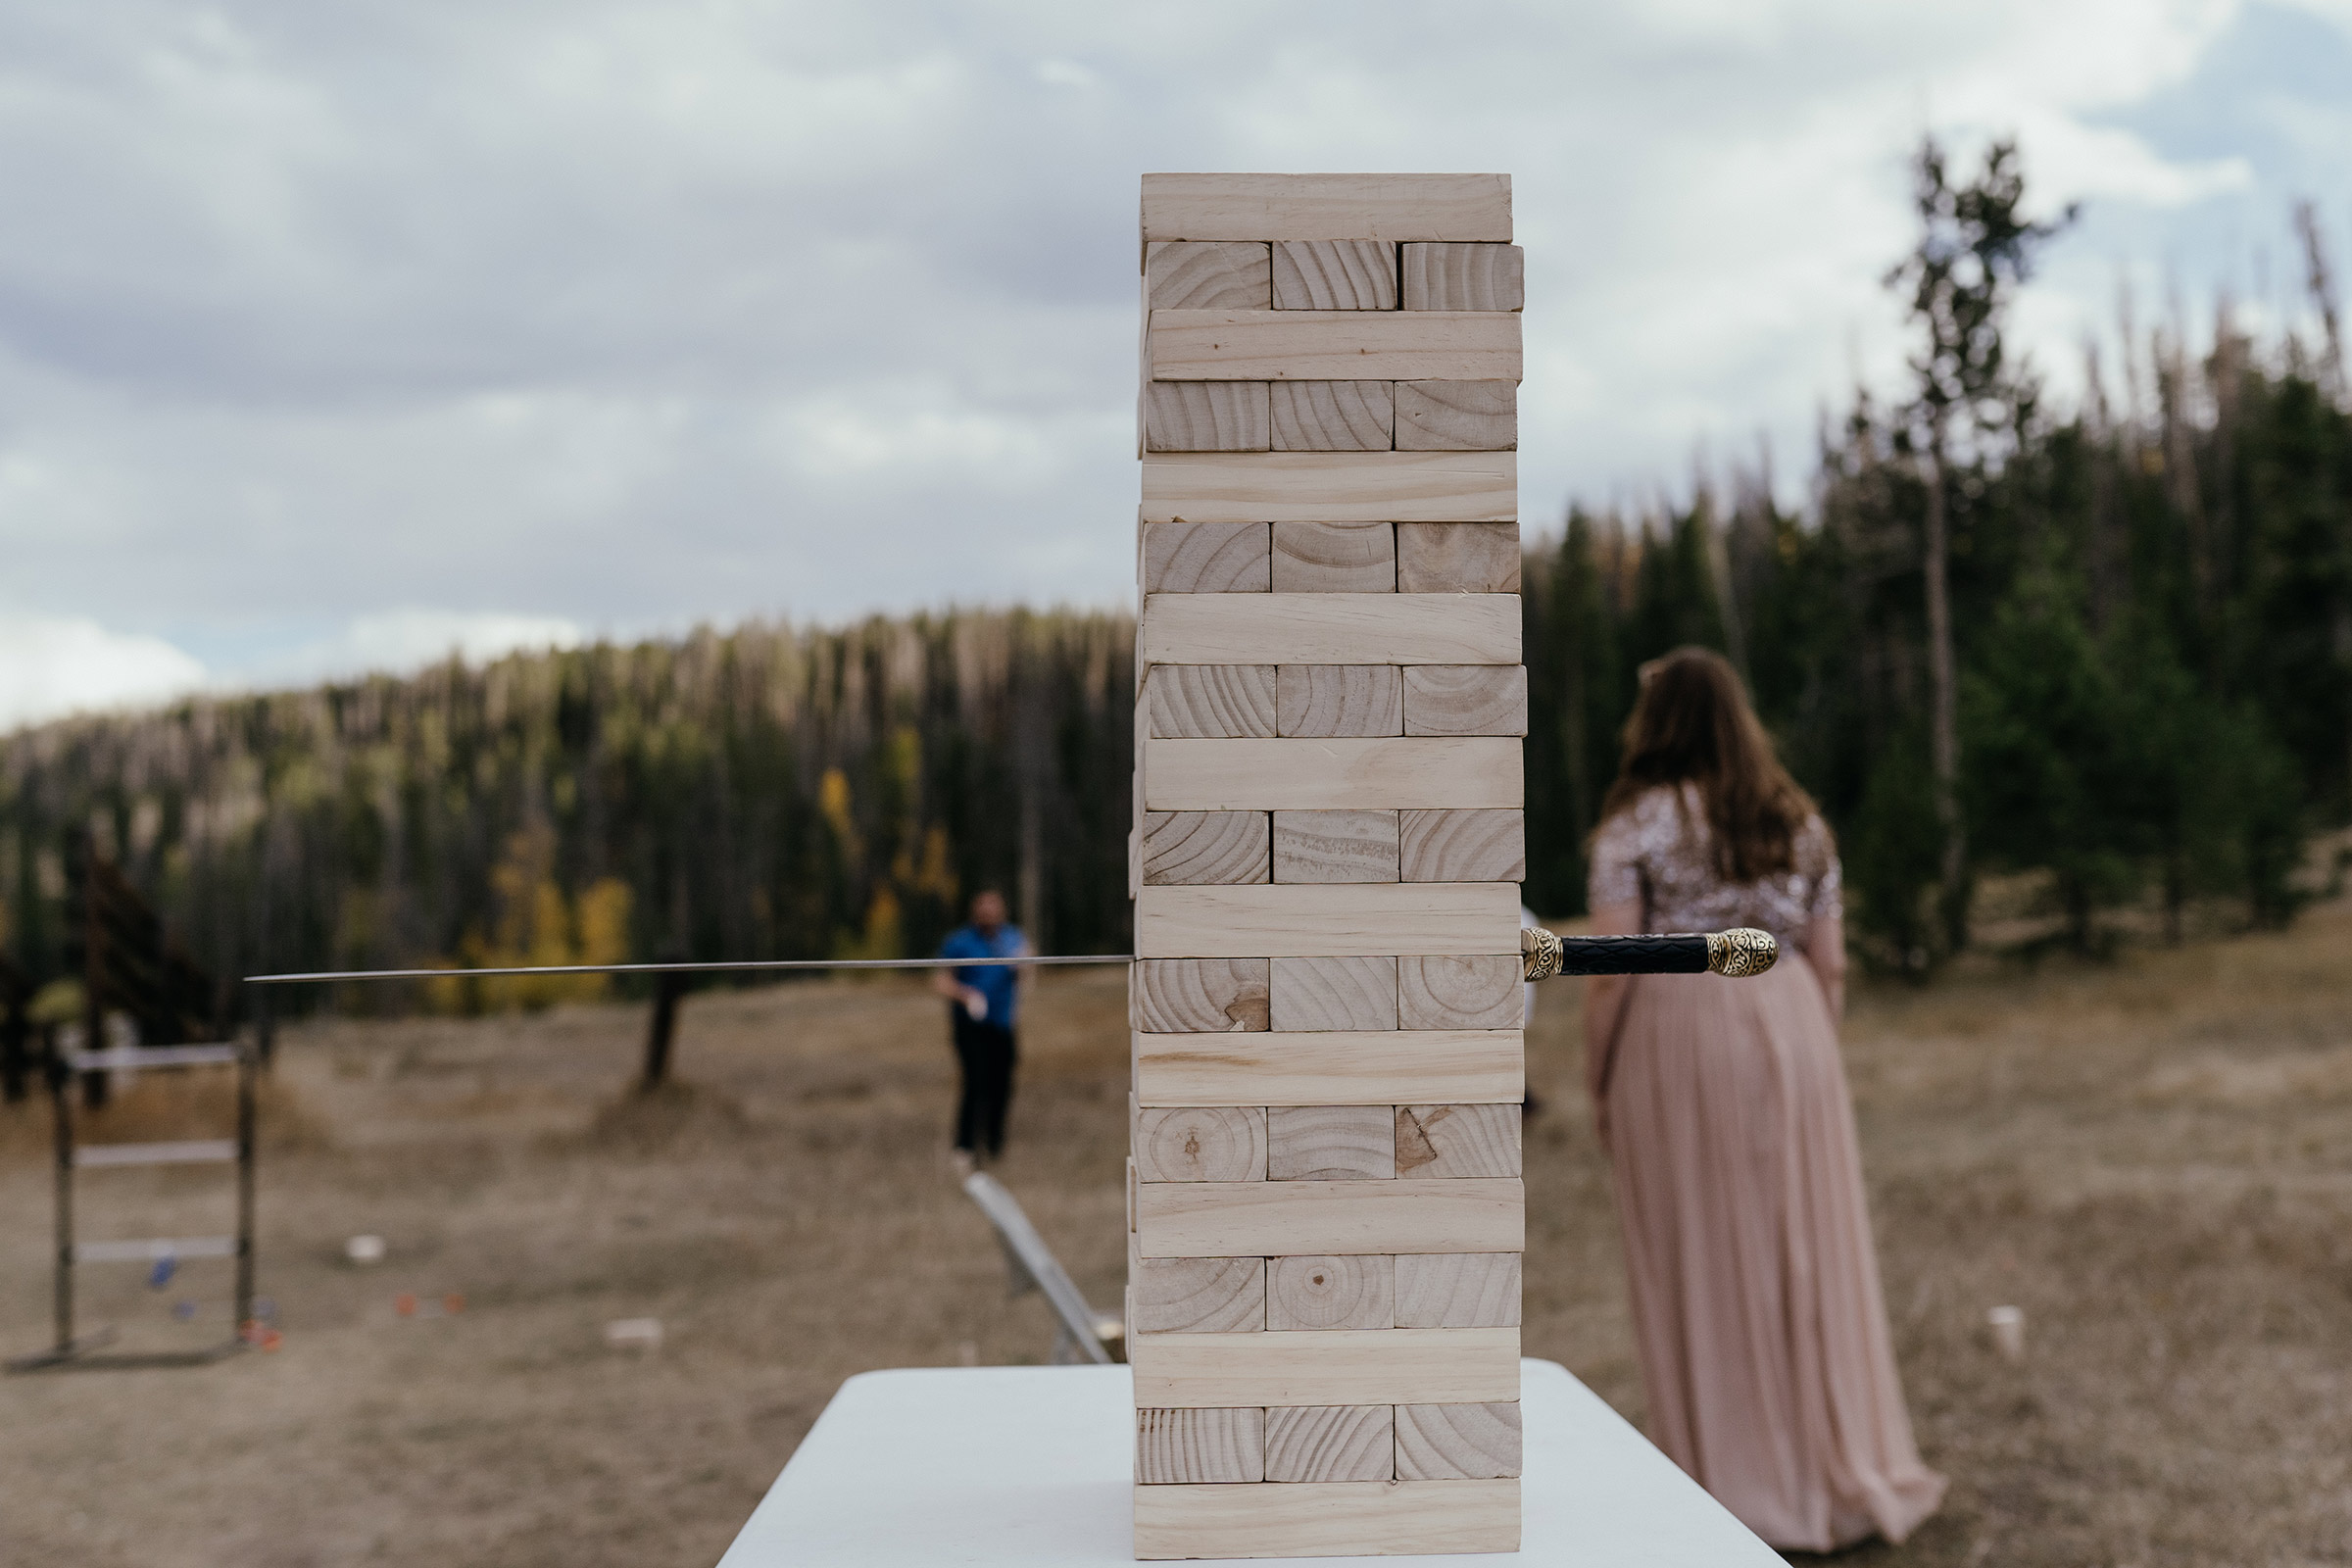 sword-through-jenga-game-double-a-barn-grand-lake-colorado-raelyn-ramey-photography-725.jpg